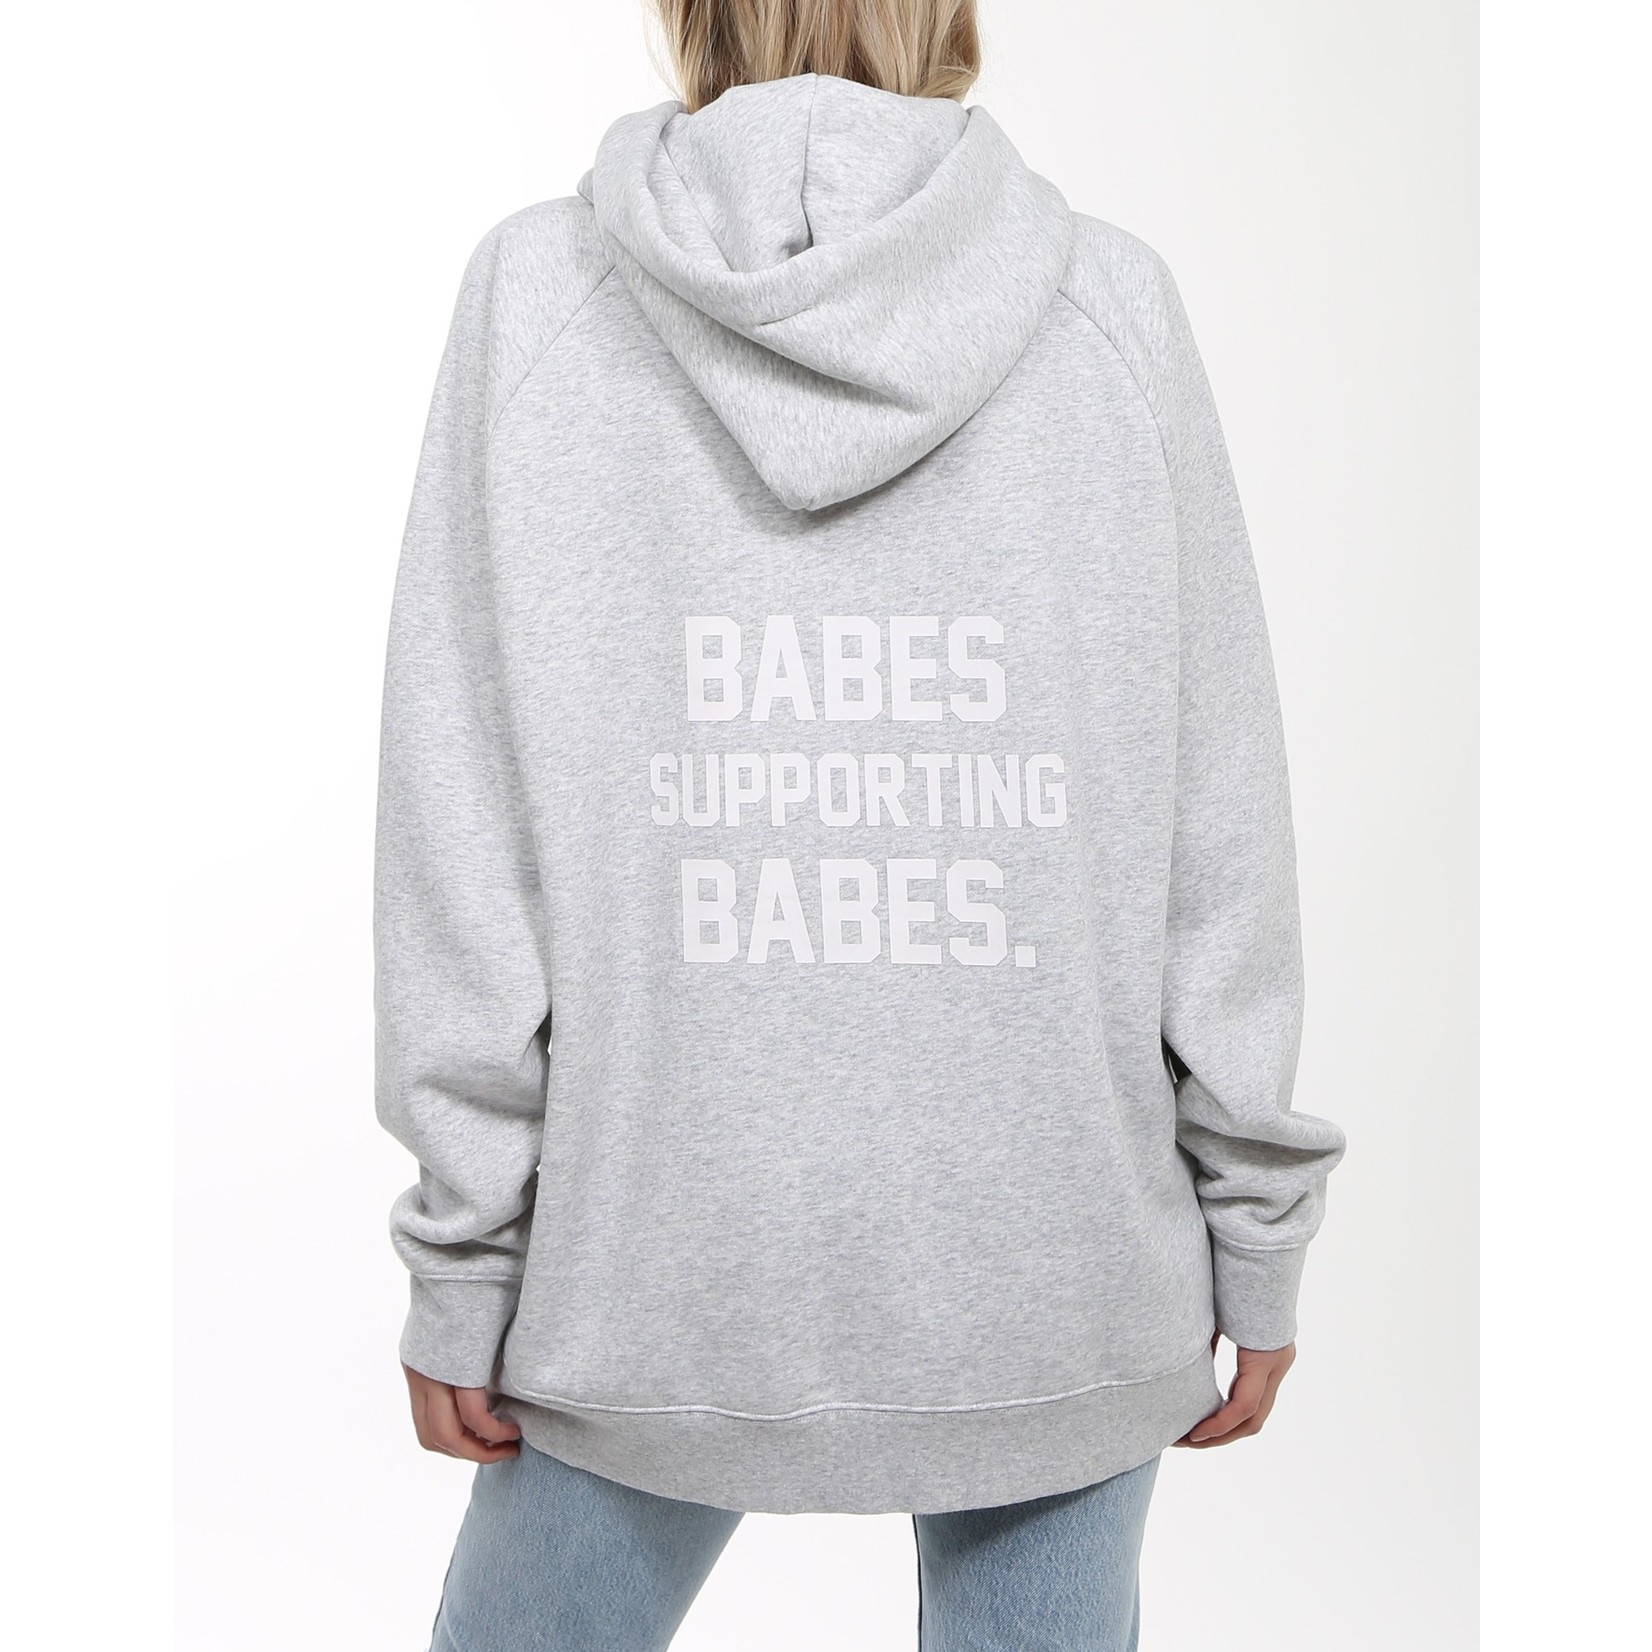 BRUNETTE THE LABEL BABES SUPPORTING BABES - BIG SISTER HOODIE